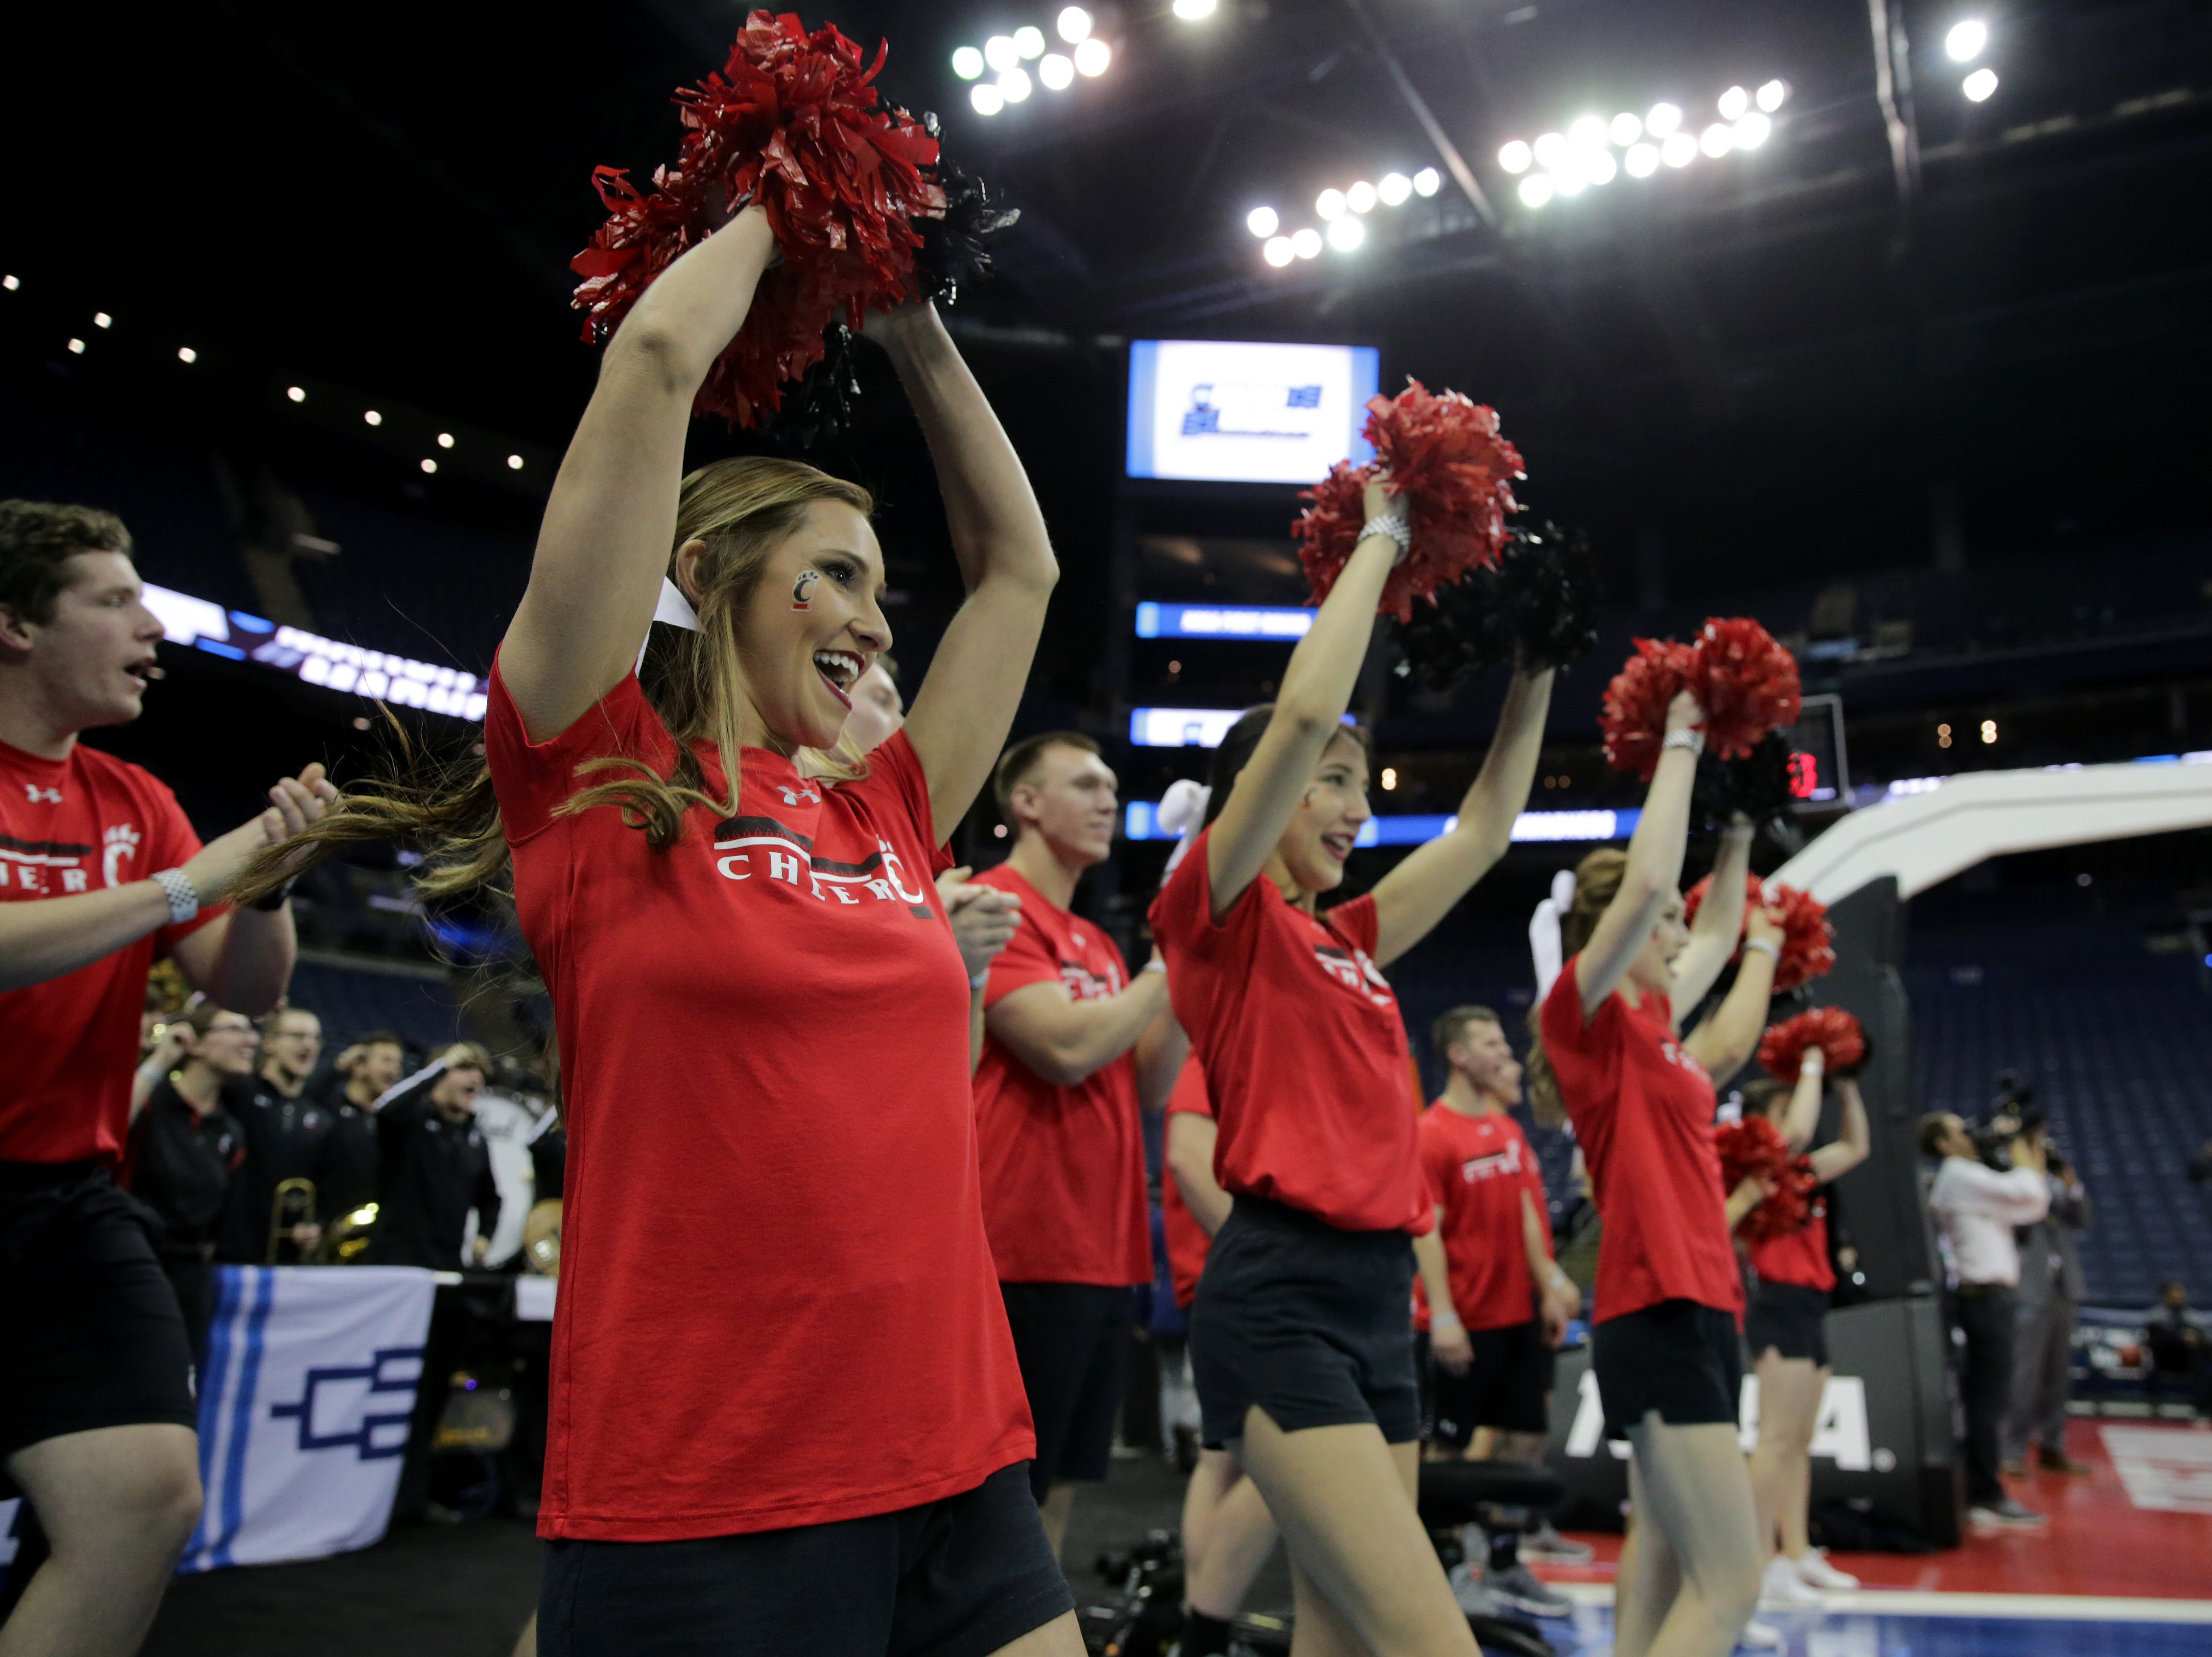 The Cincinnati Bearcats cheerleaders attend open practice, Thursday, March 21, 2019, at Nationwide Arena in Columbus, Ohio.